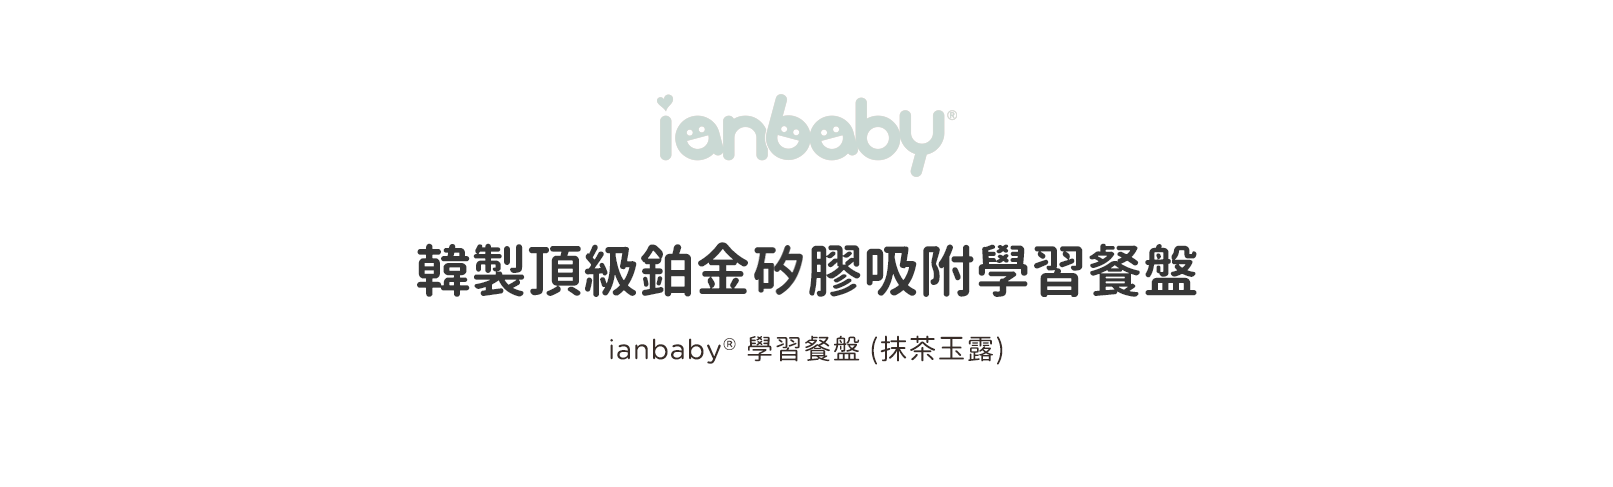 ianbaby-FT-G_01.png